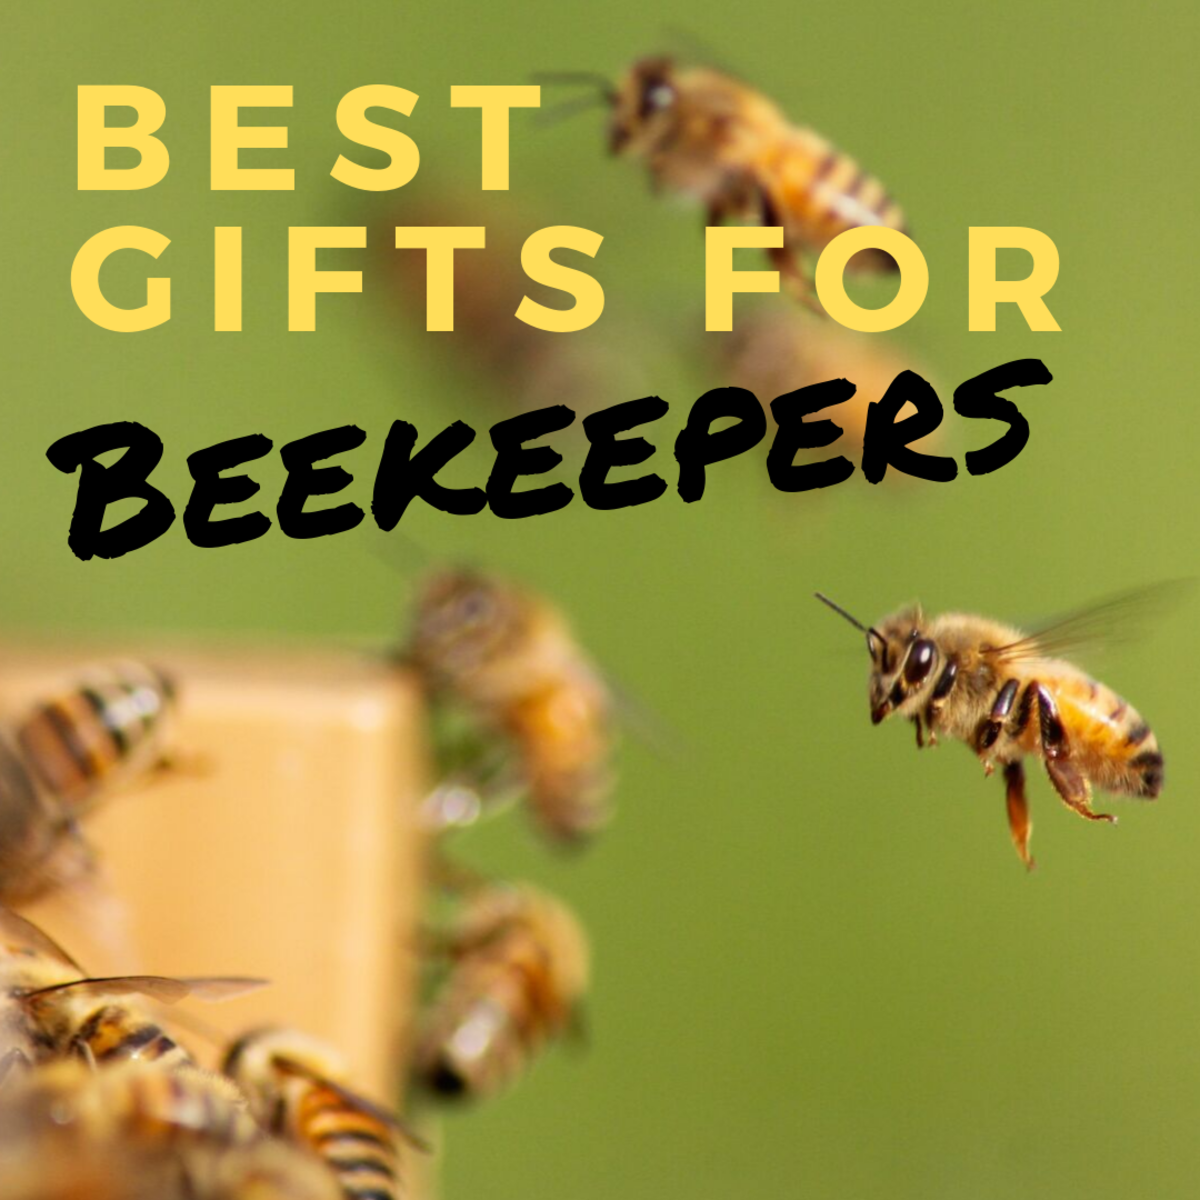 7 Gifts for Beekeepers